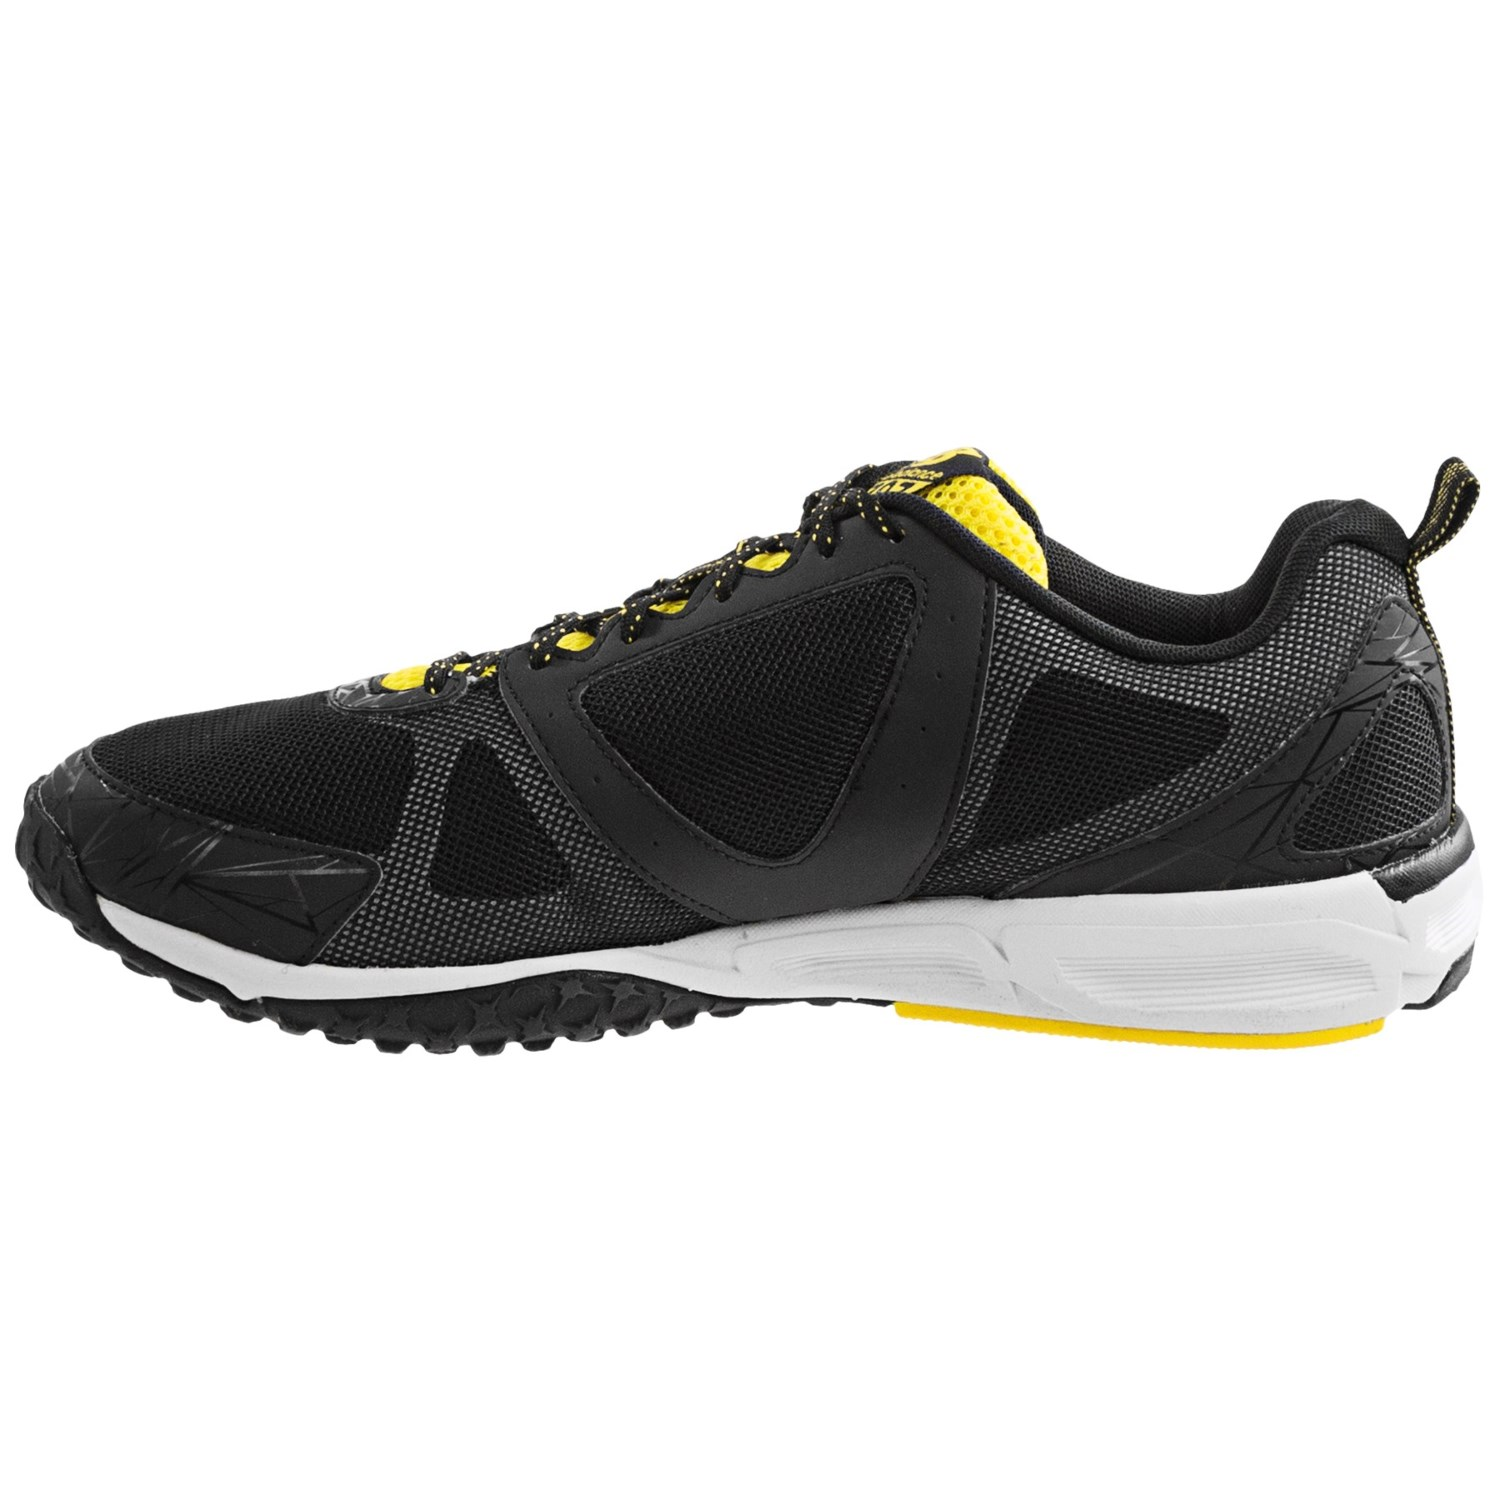 Best Hiking Cross Training Shoes